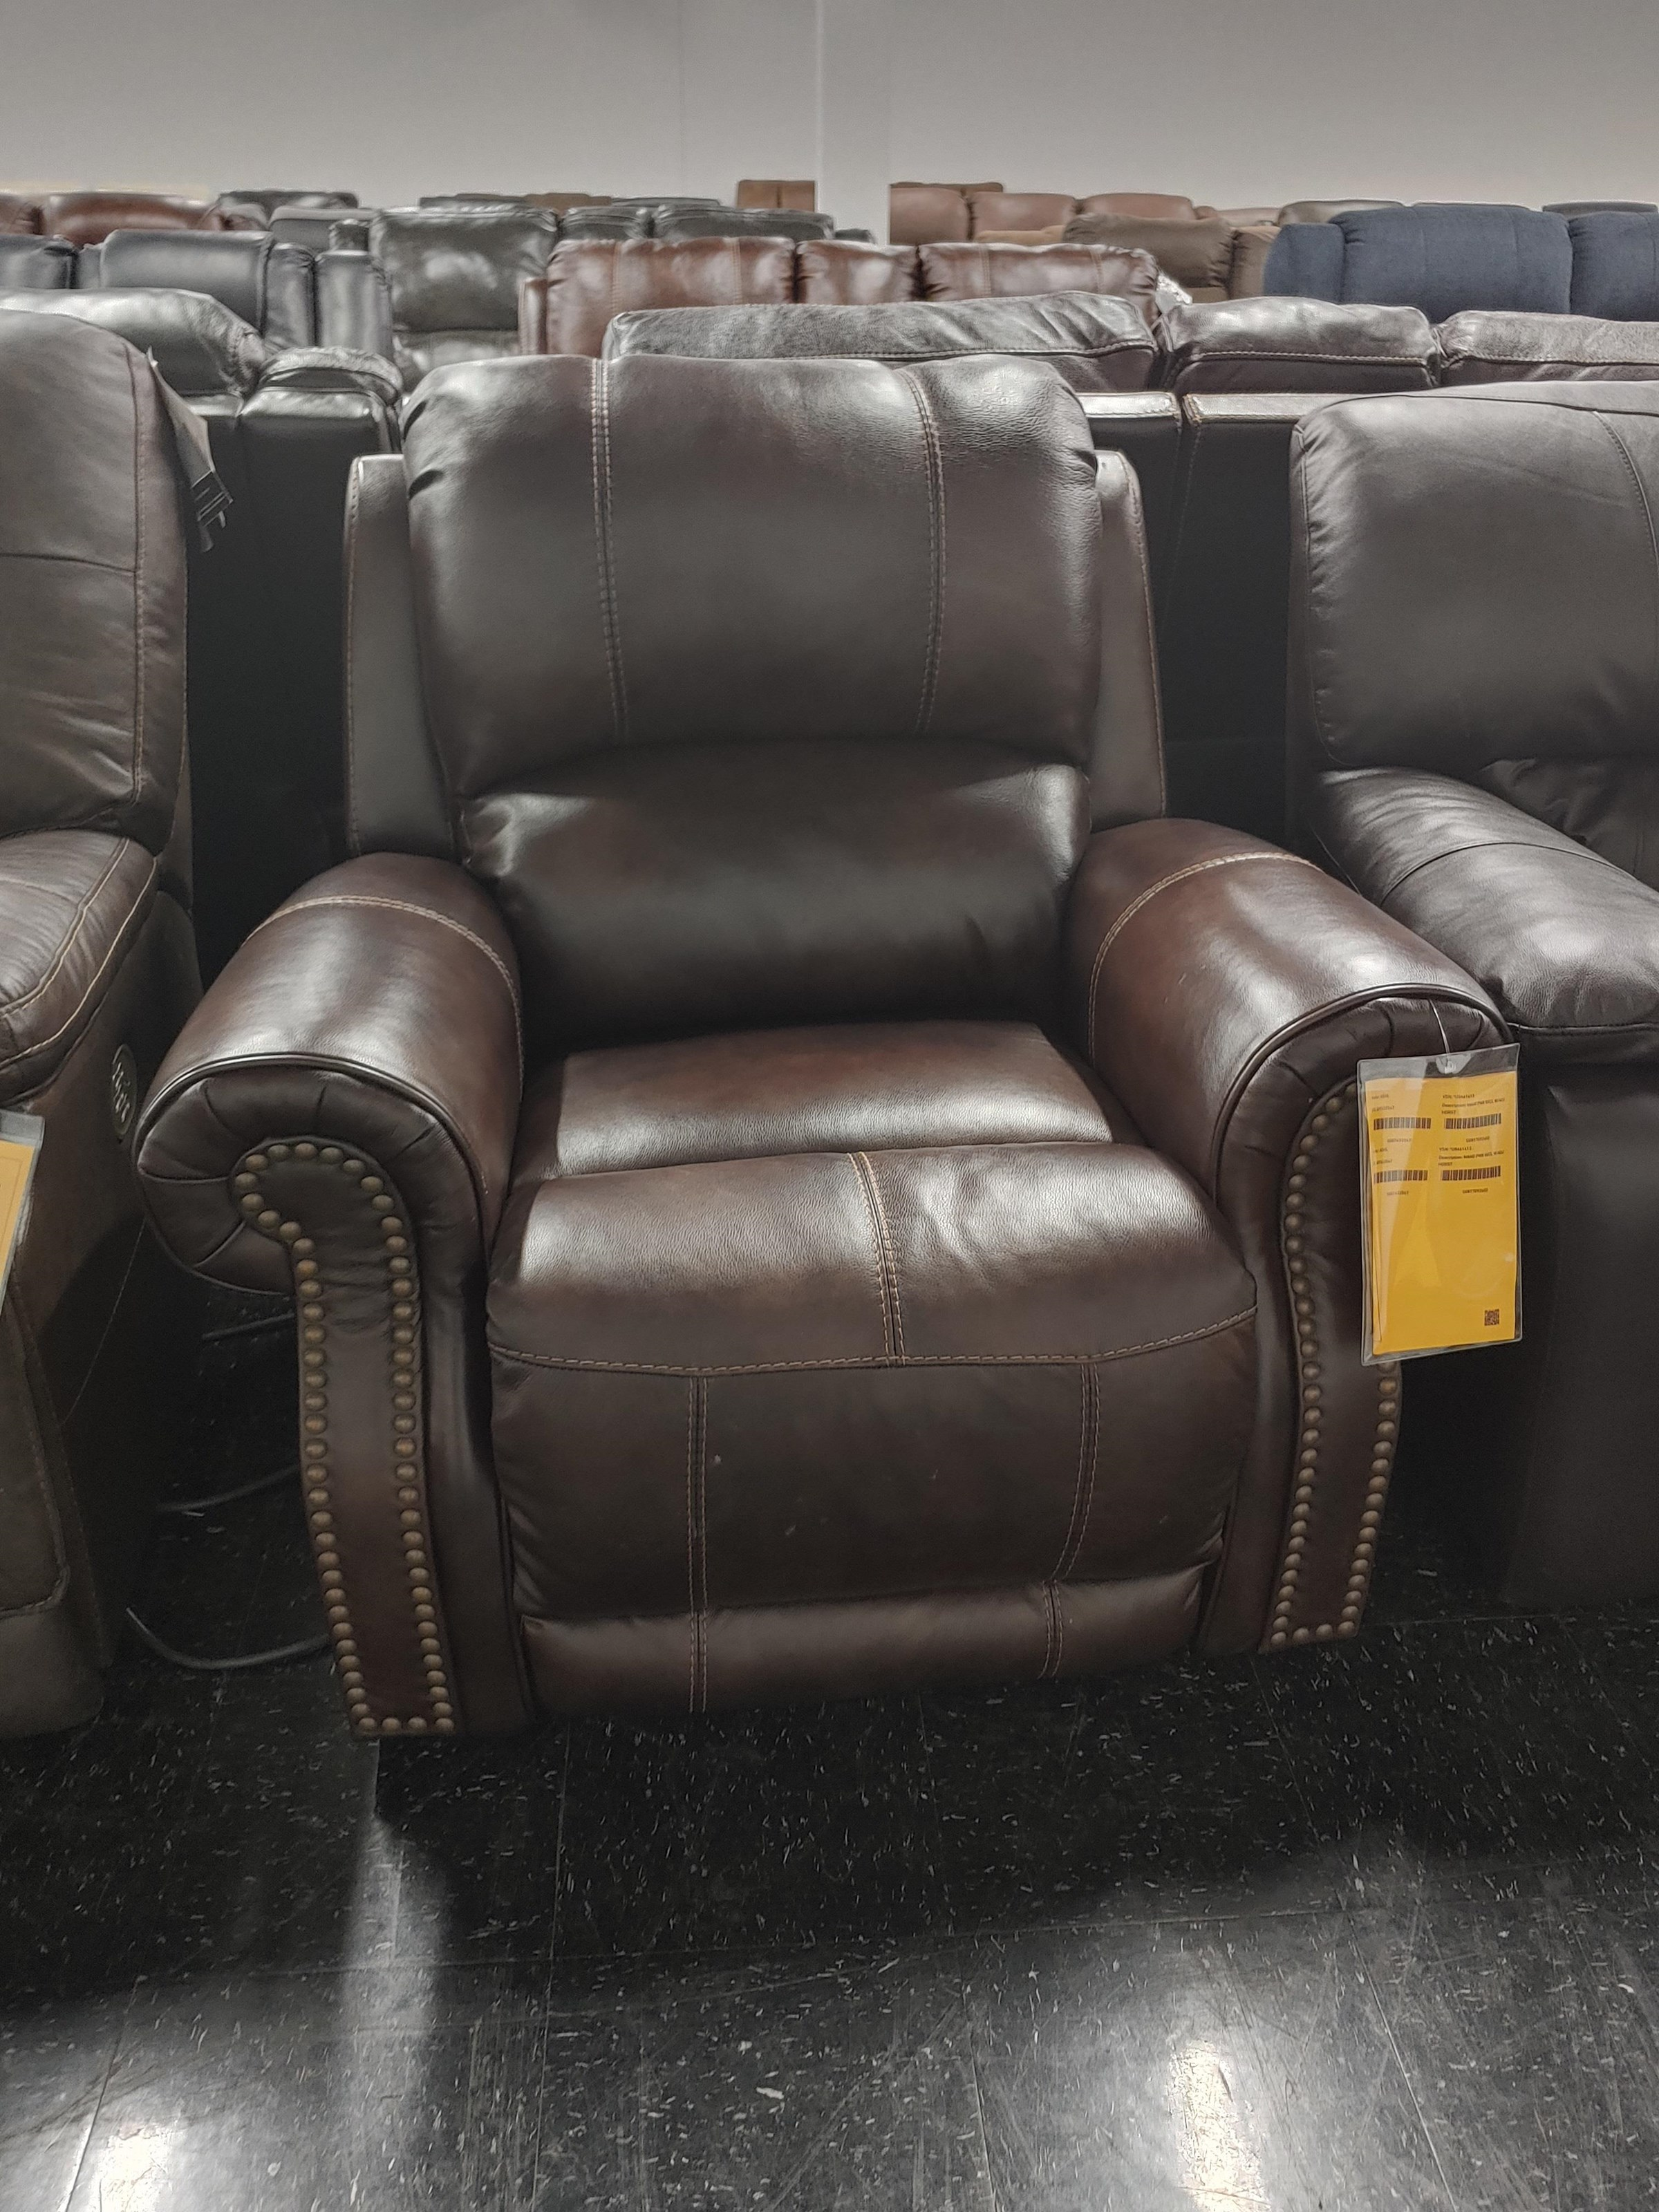 Last One Recliner - Last One! Power Recliner! at Morris Home